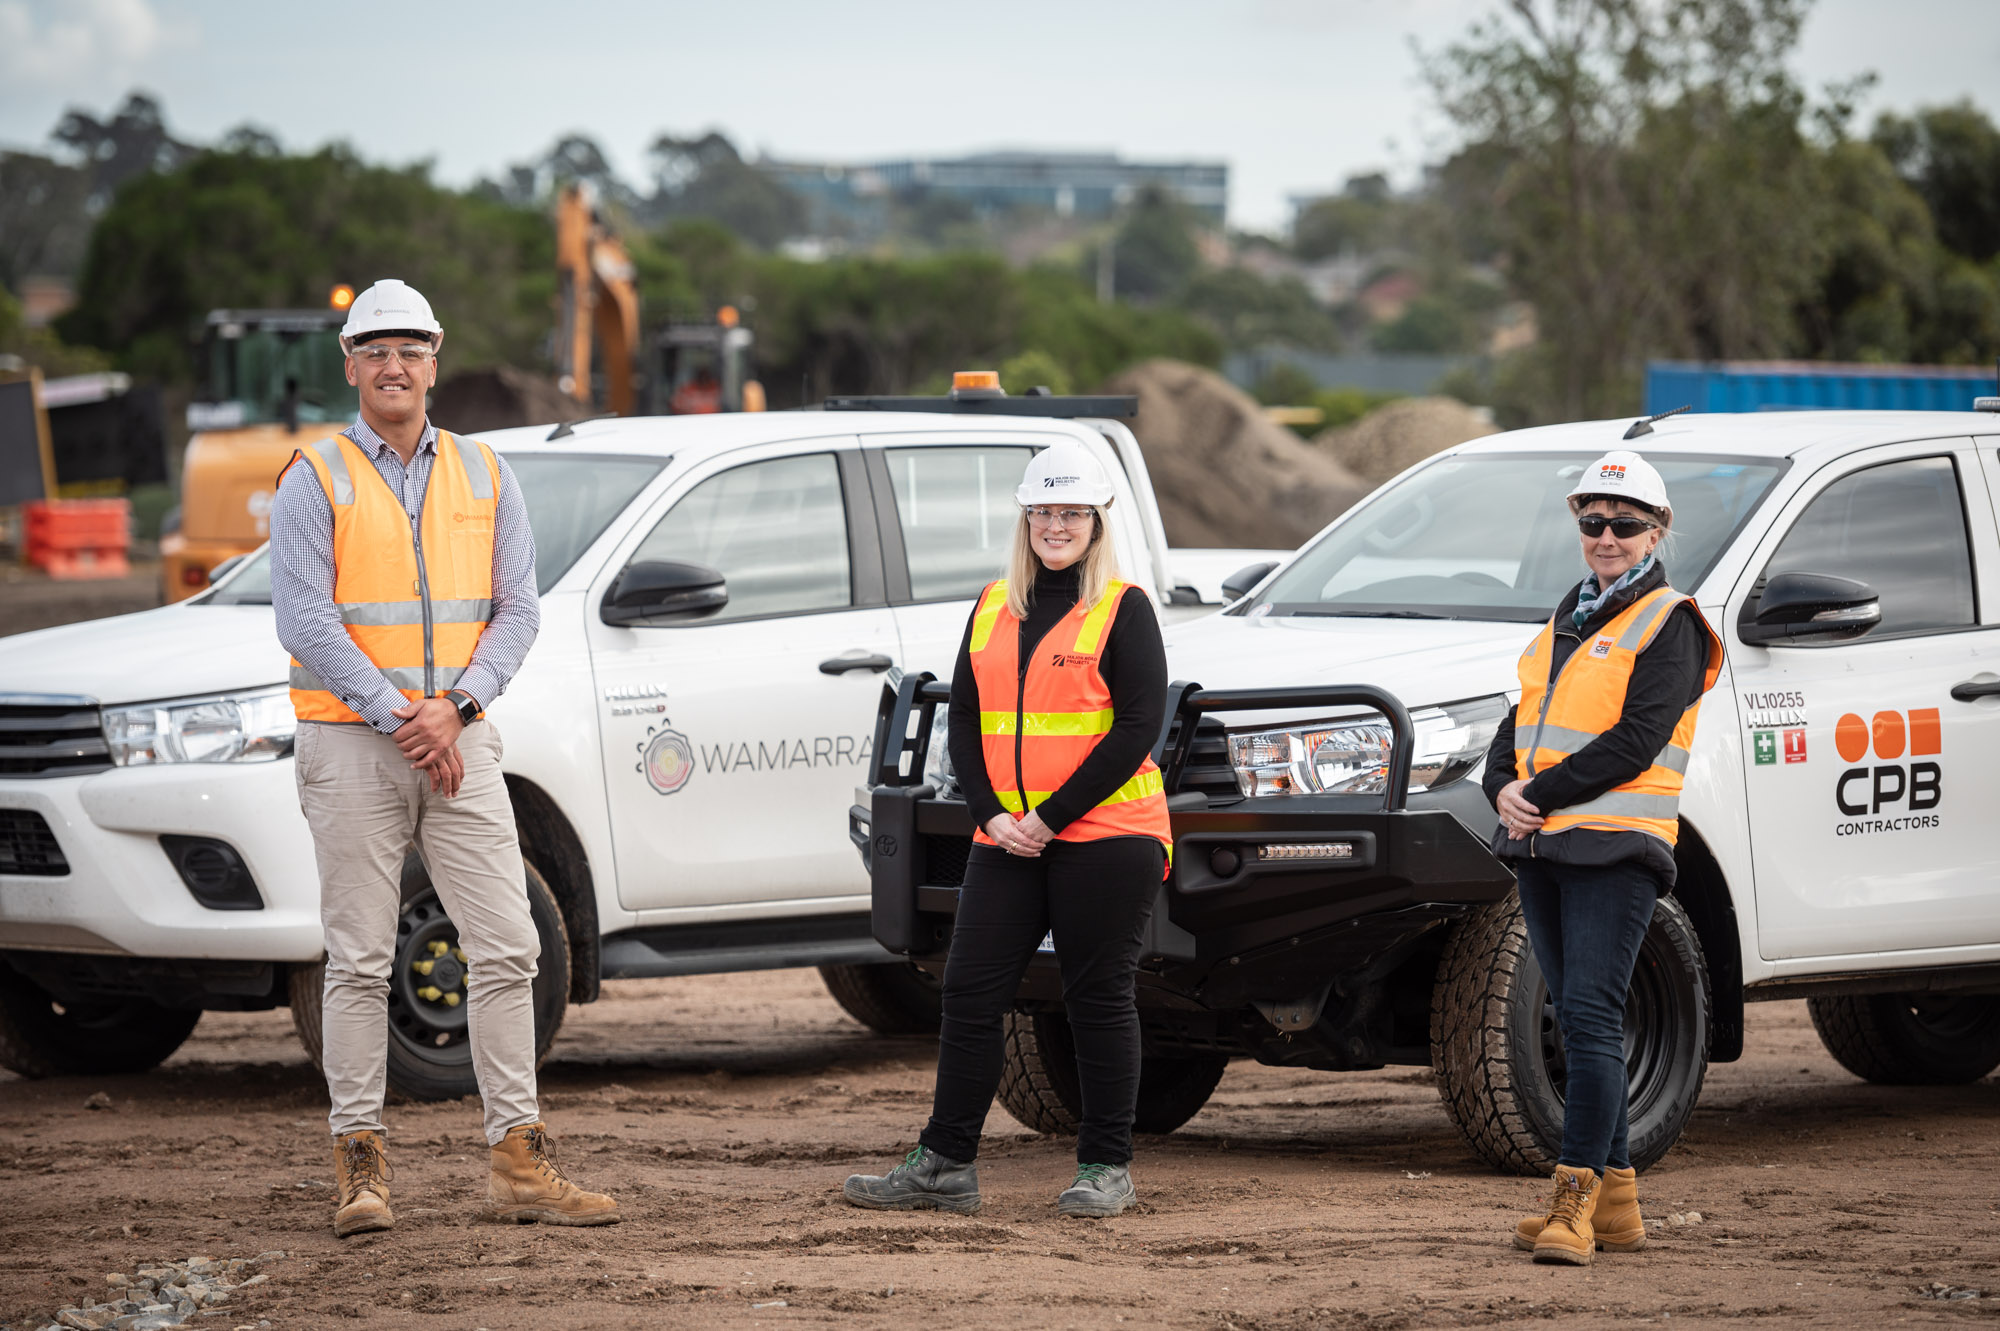 Wamarra and CPB Contractors Building Better Together